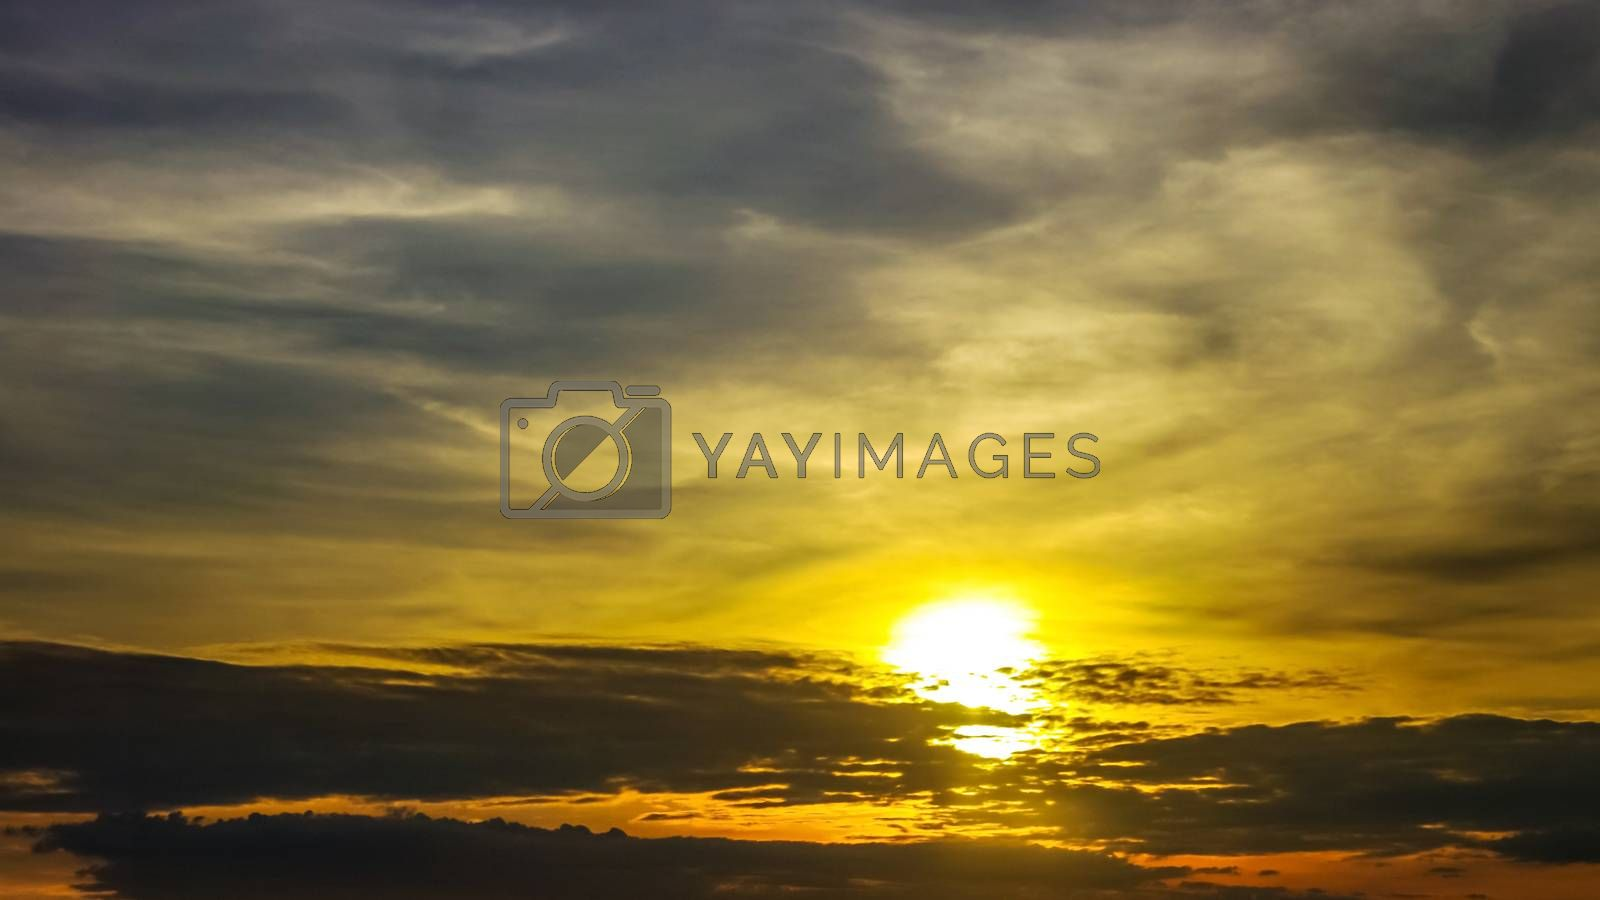 Nice clouds with sunset sky